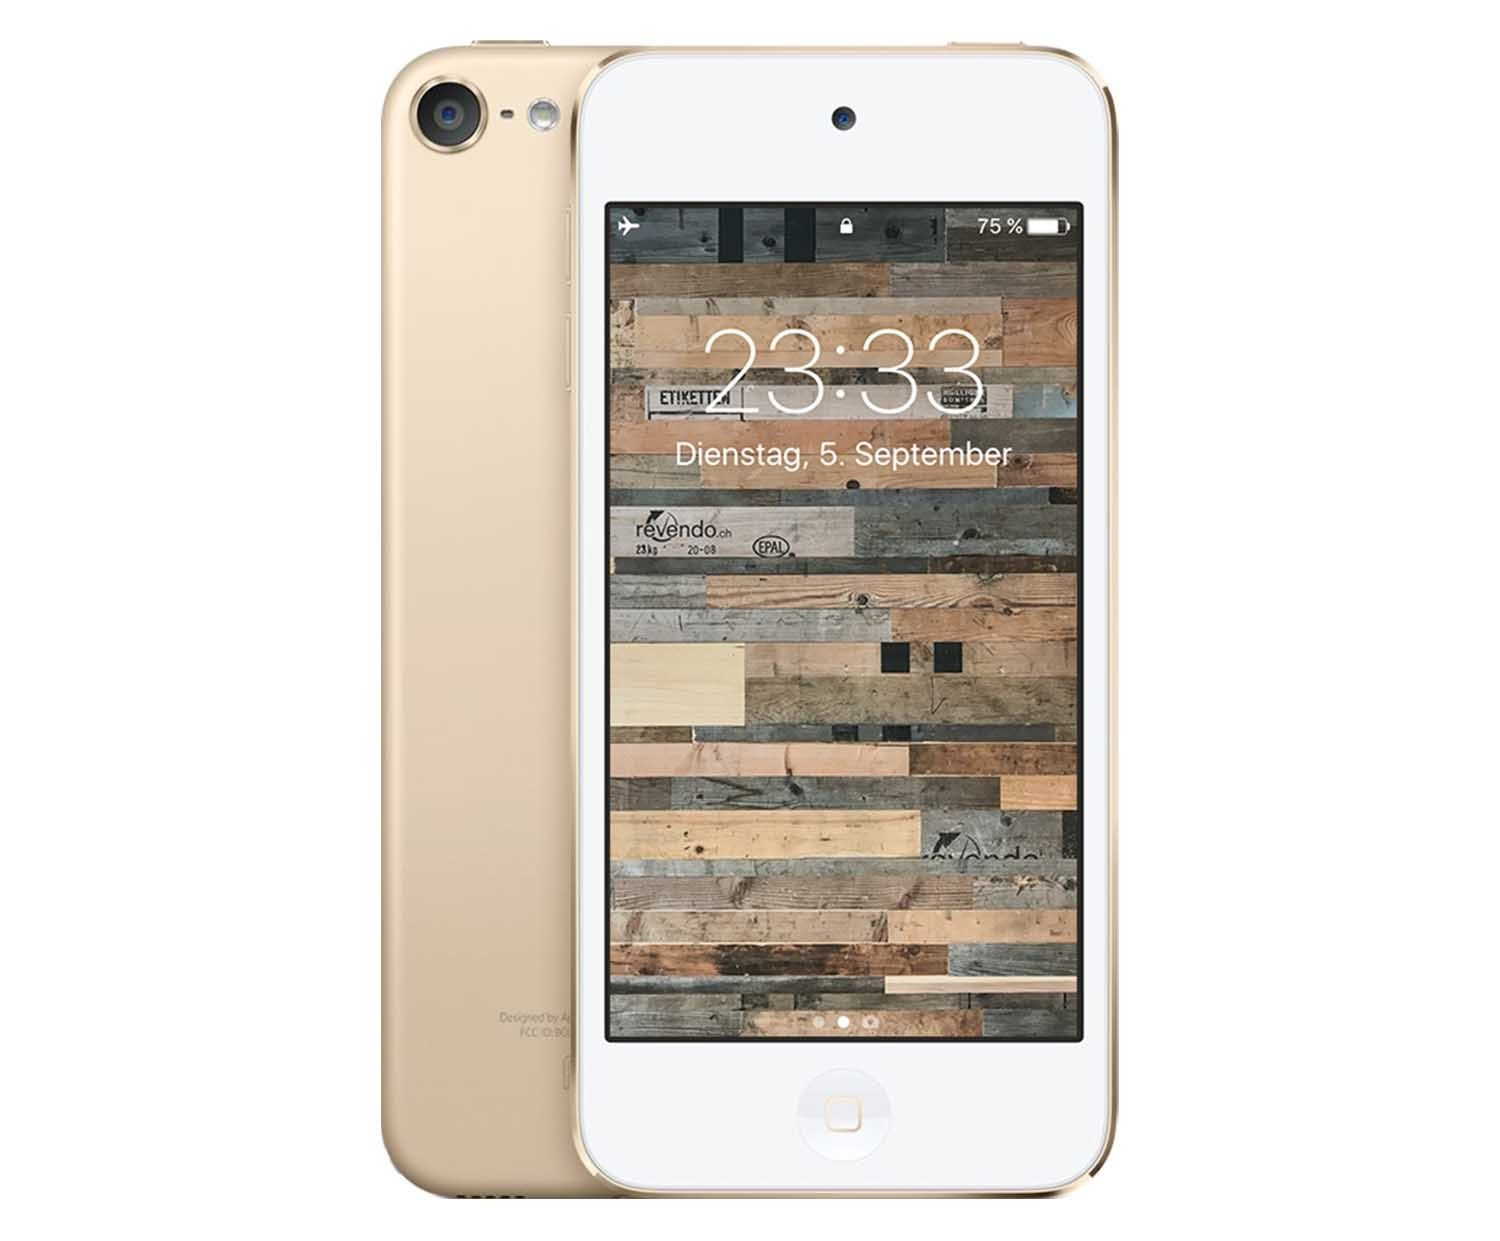 apple ipod touch 6 generation 64 gb gold. Black Bedroom Furniture Sets. Home Design Ideas